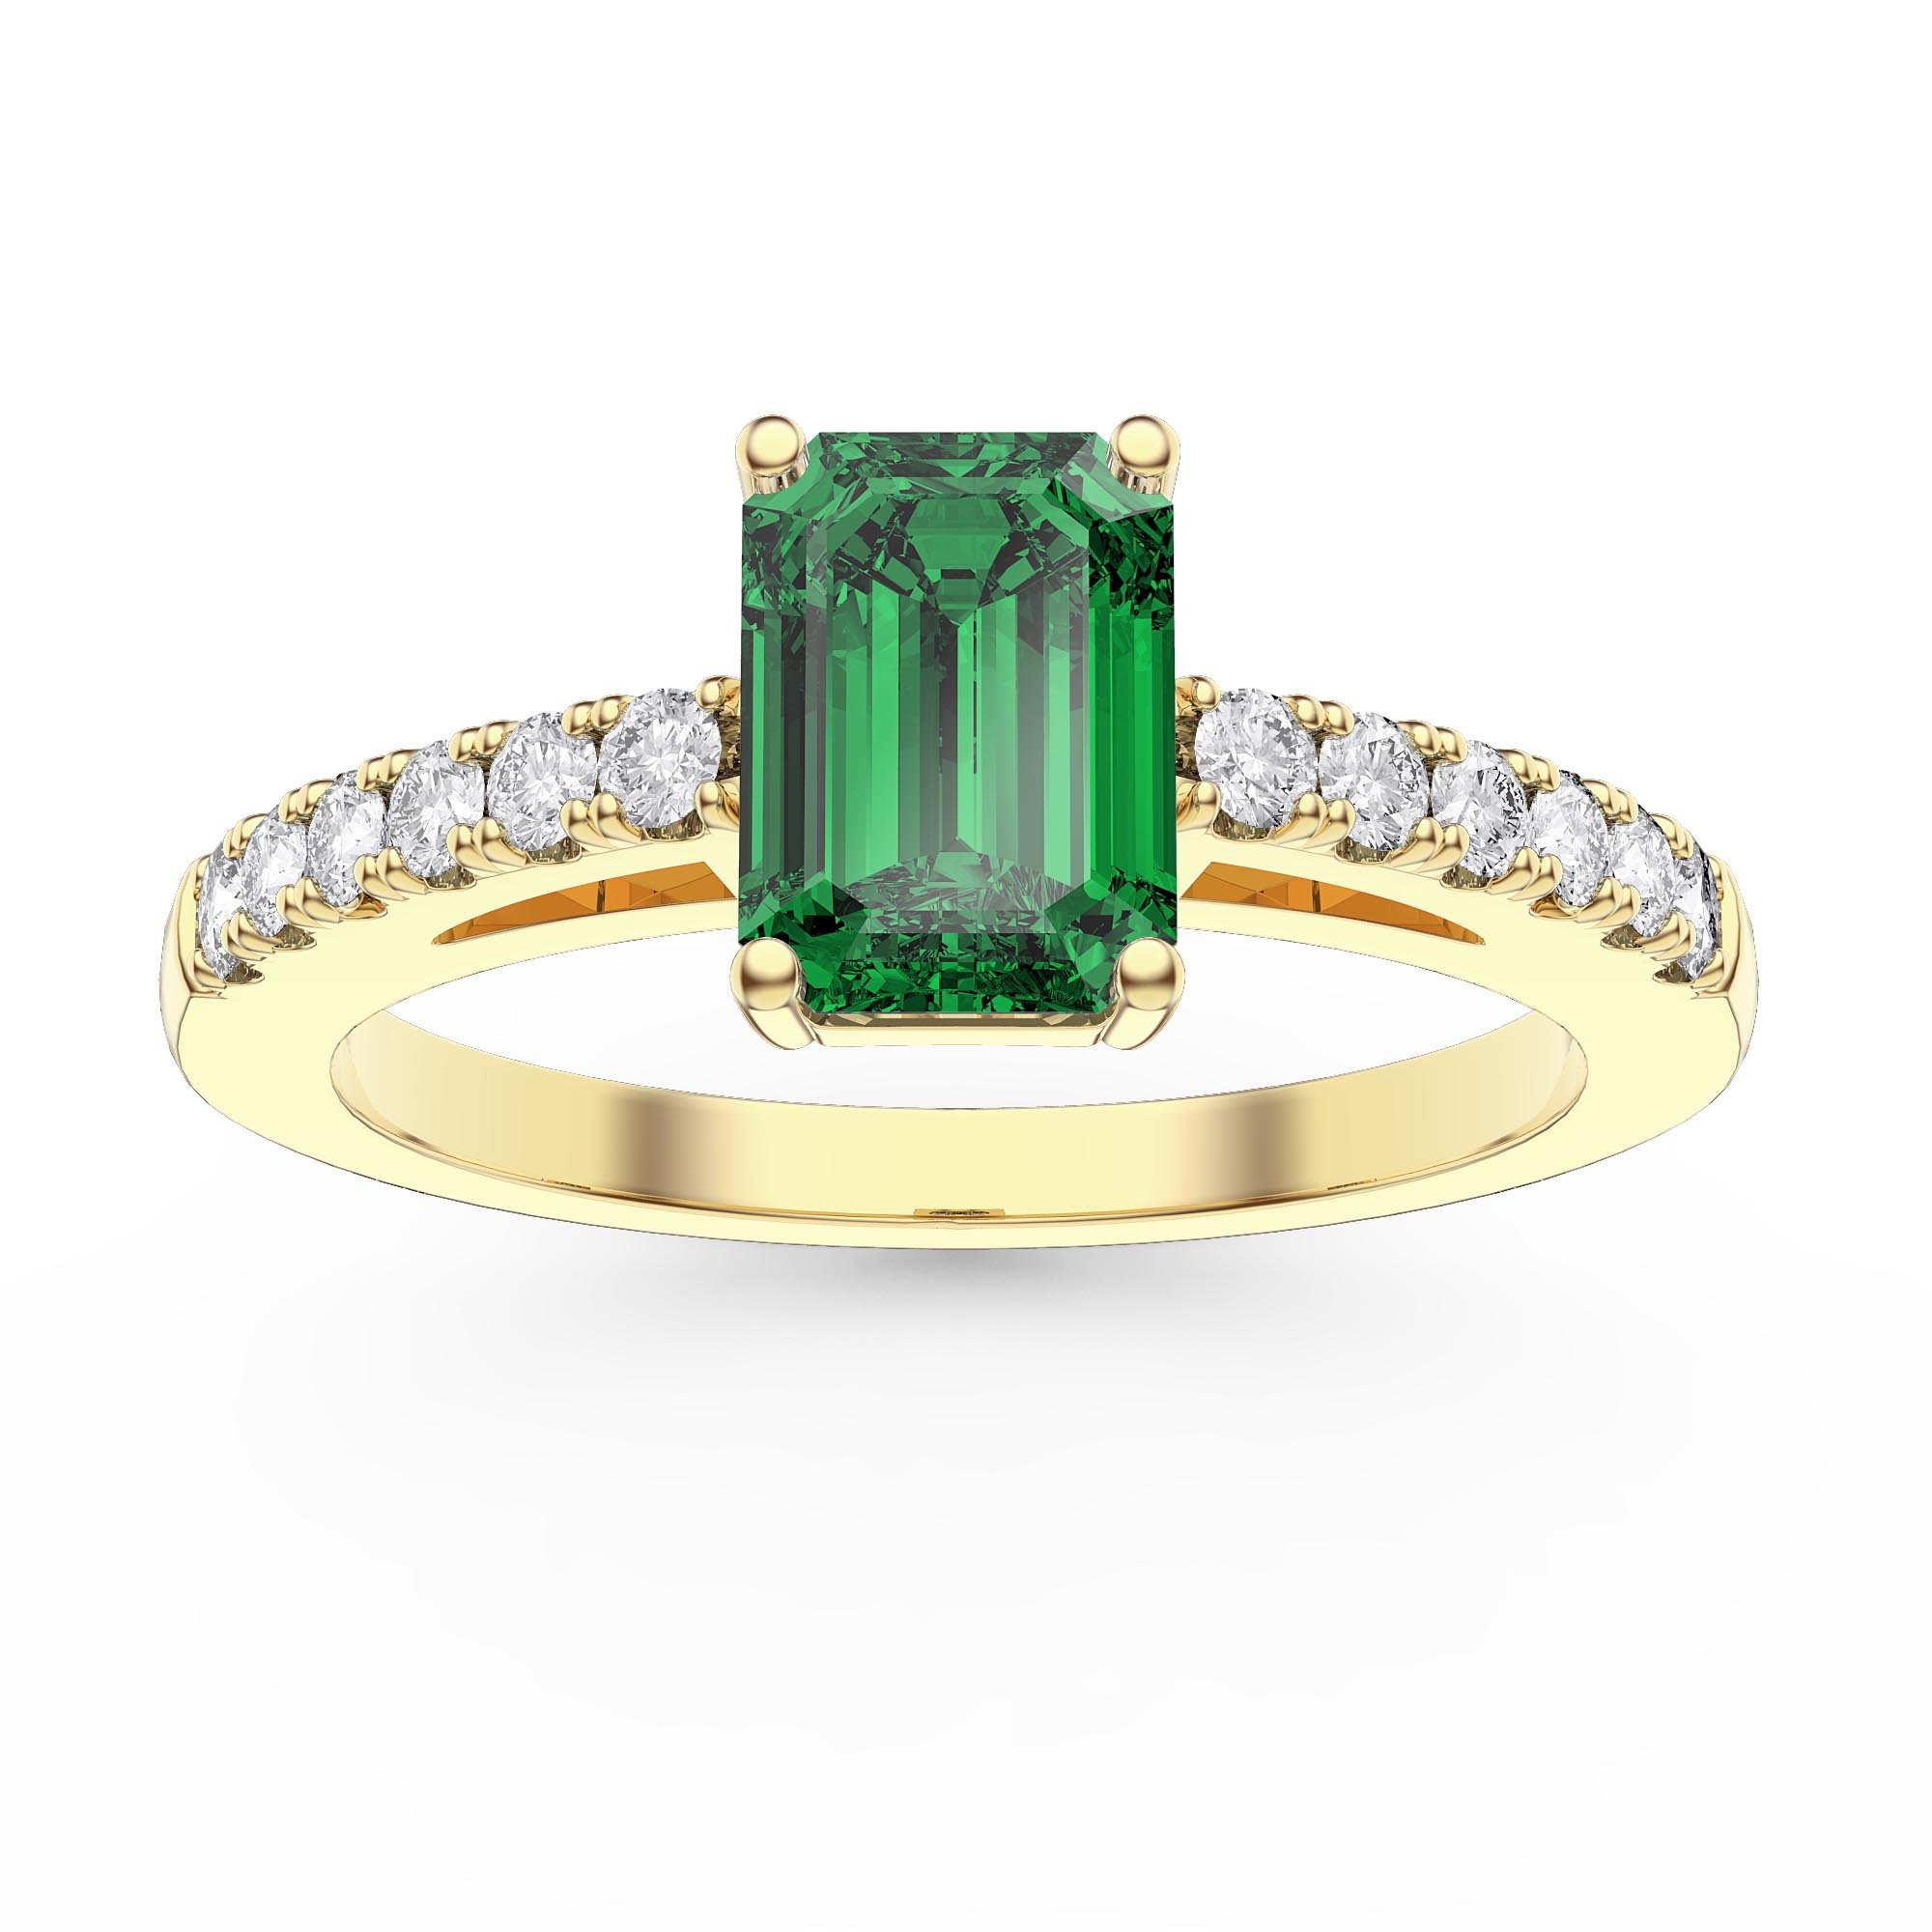 39a421723289c Unity 1ct Emerald Cut Emerald Diamond Pave 18ct Yellow Gold Engagement Ring